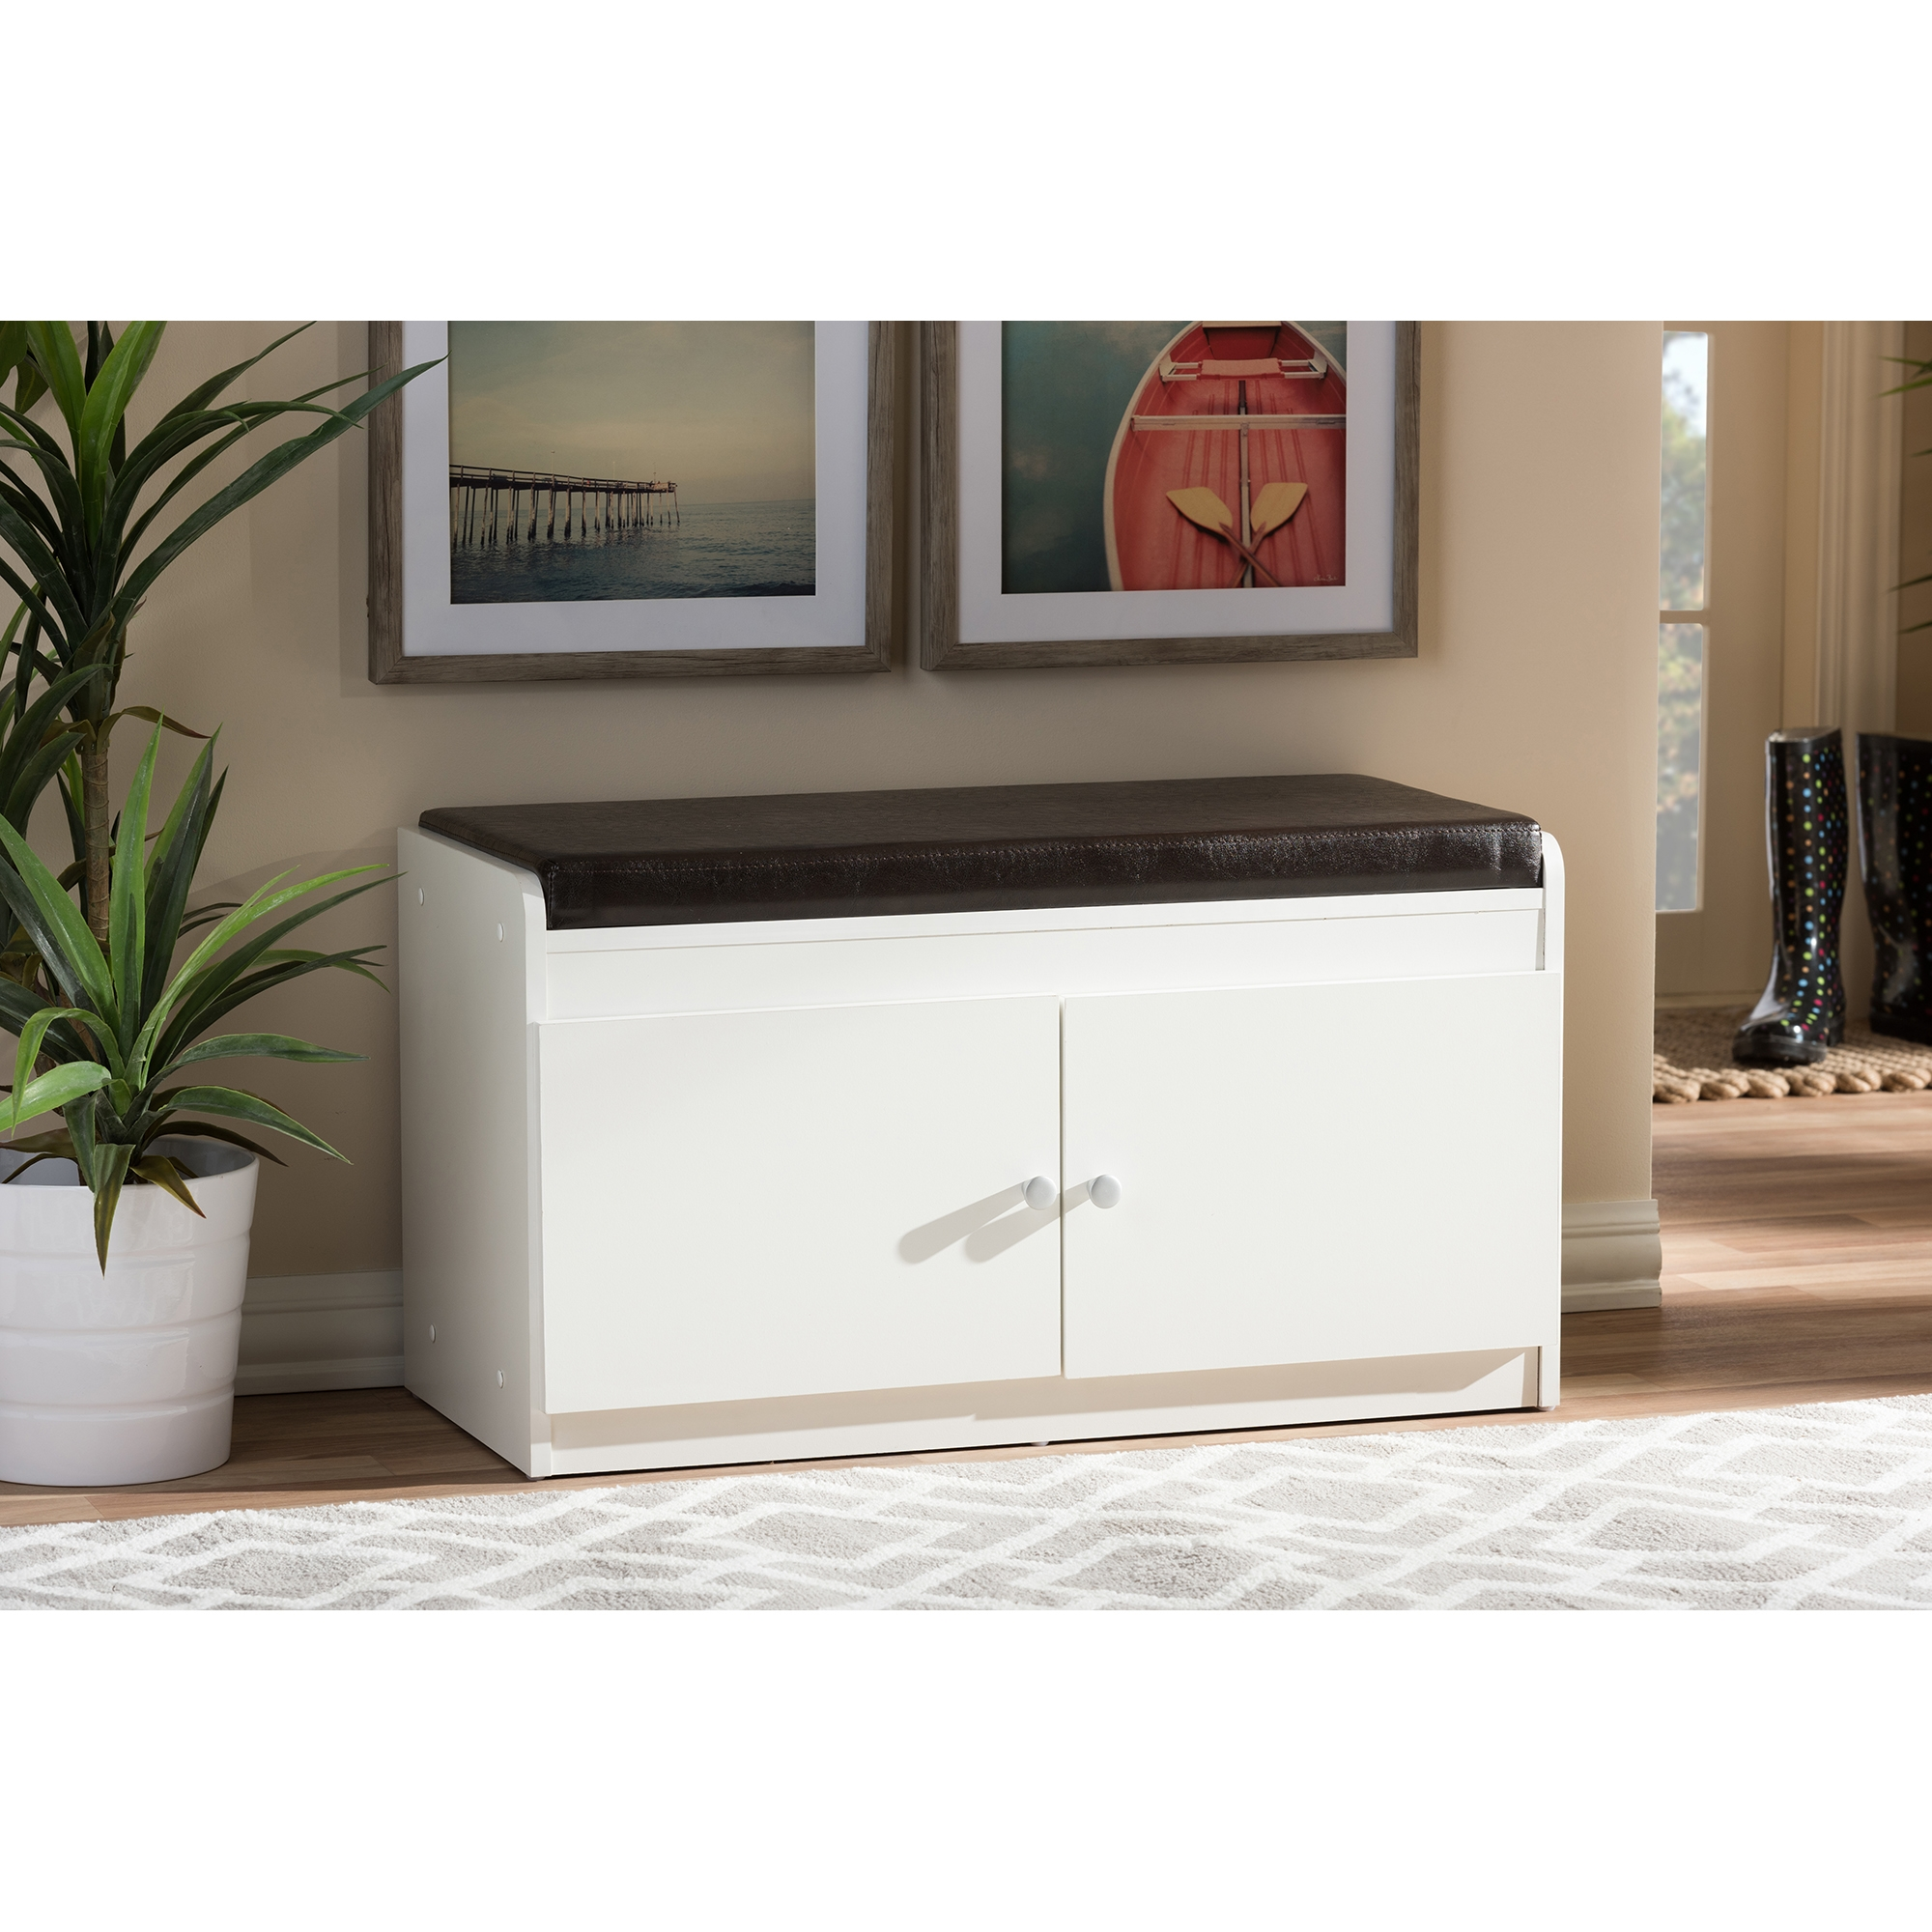 ... Baxton Studio Margaret Modern And Contemporary White Wood 2 Door Shoe  Cabinet With Faux Leather ...